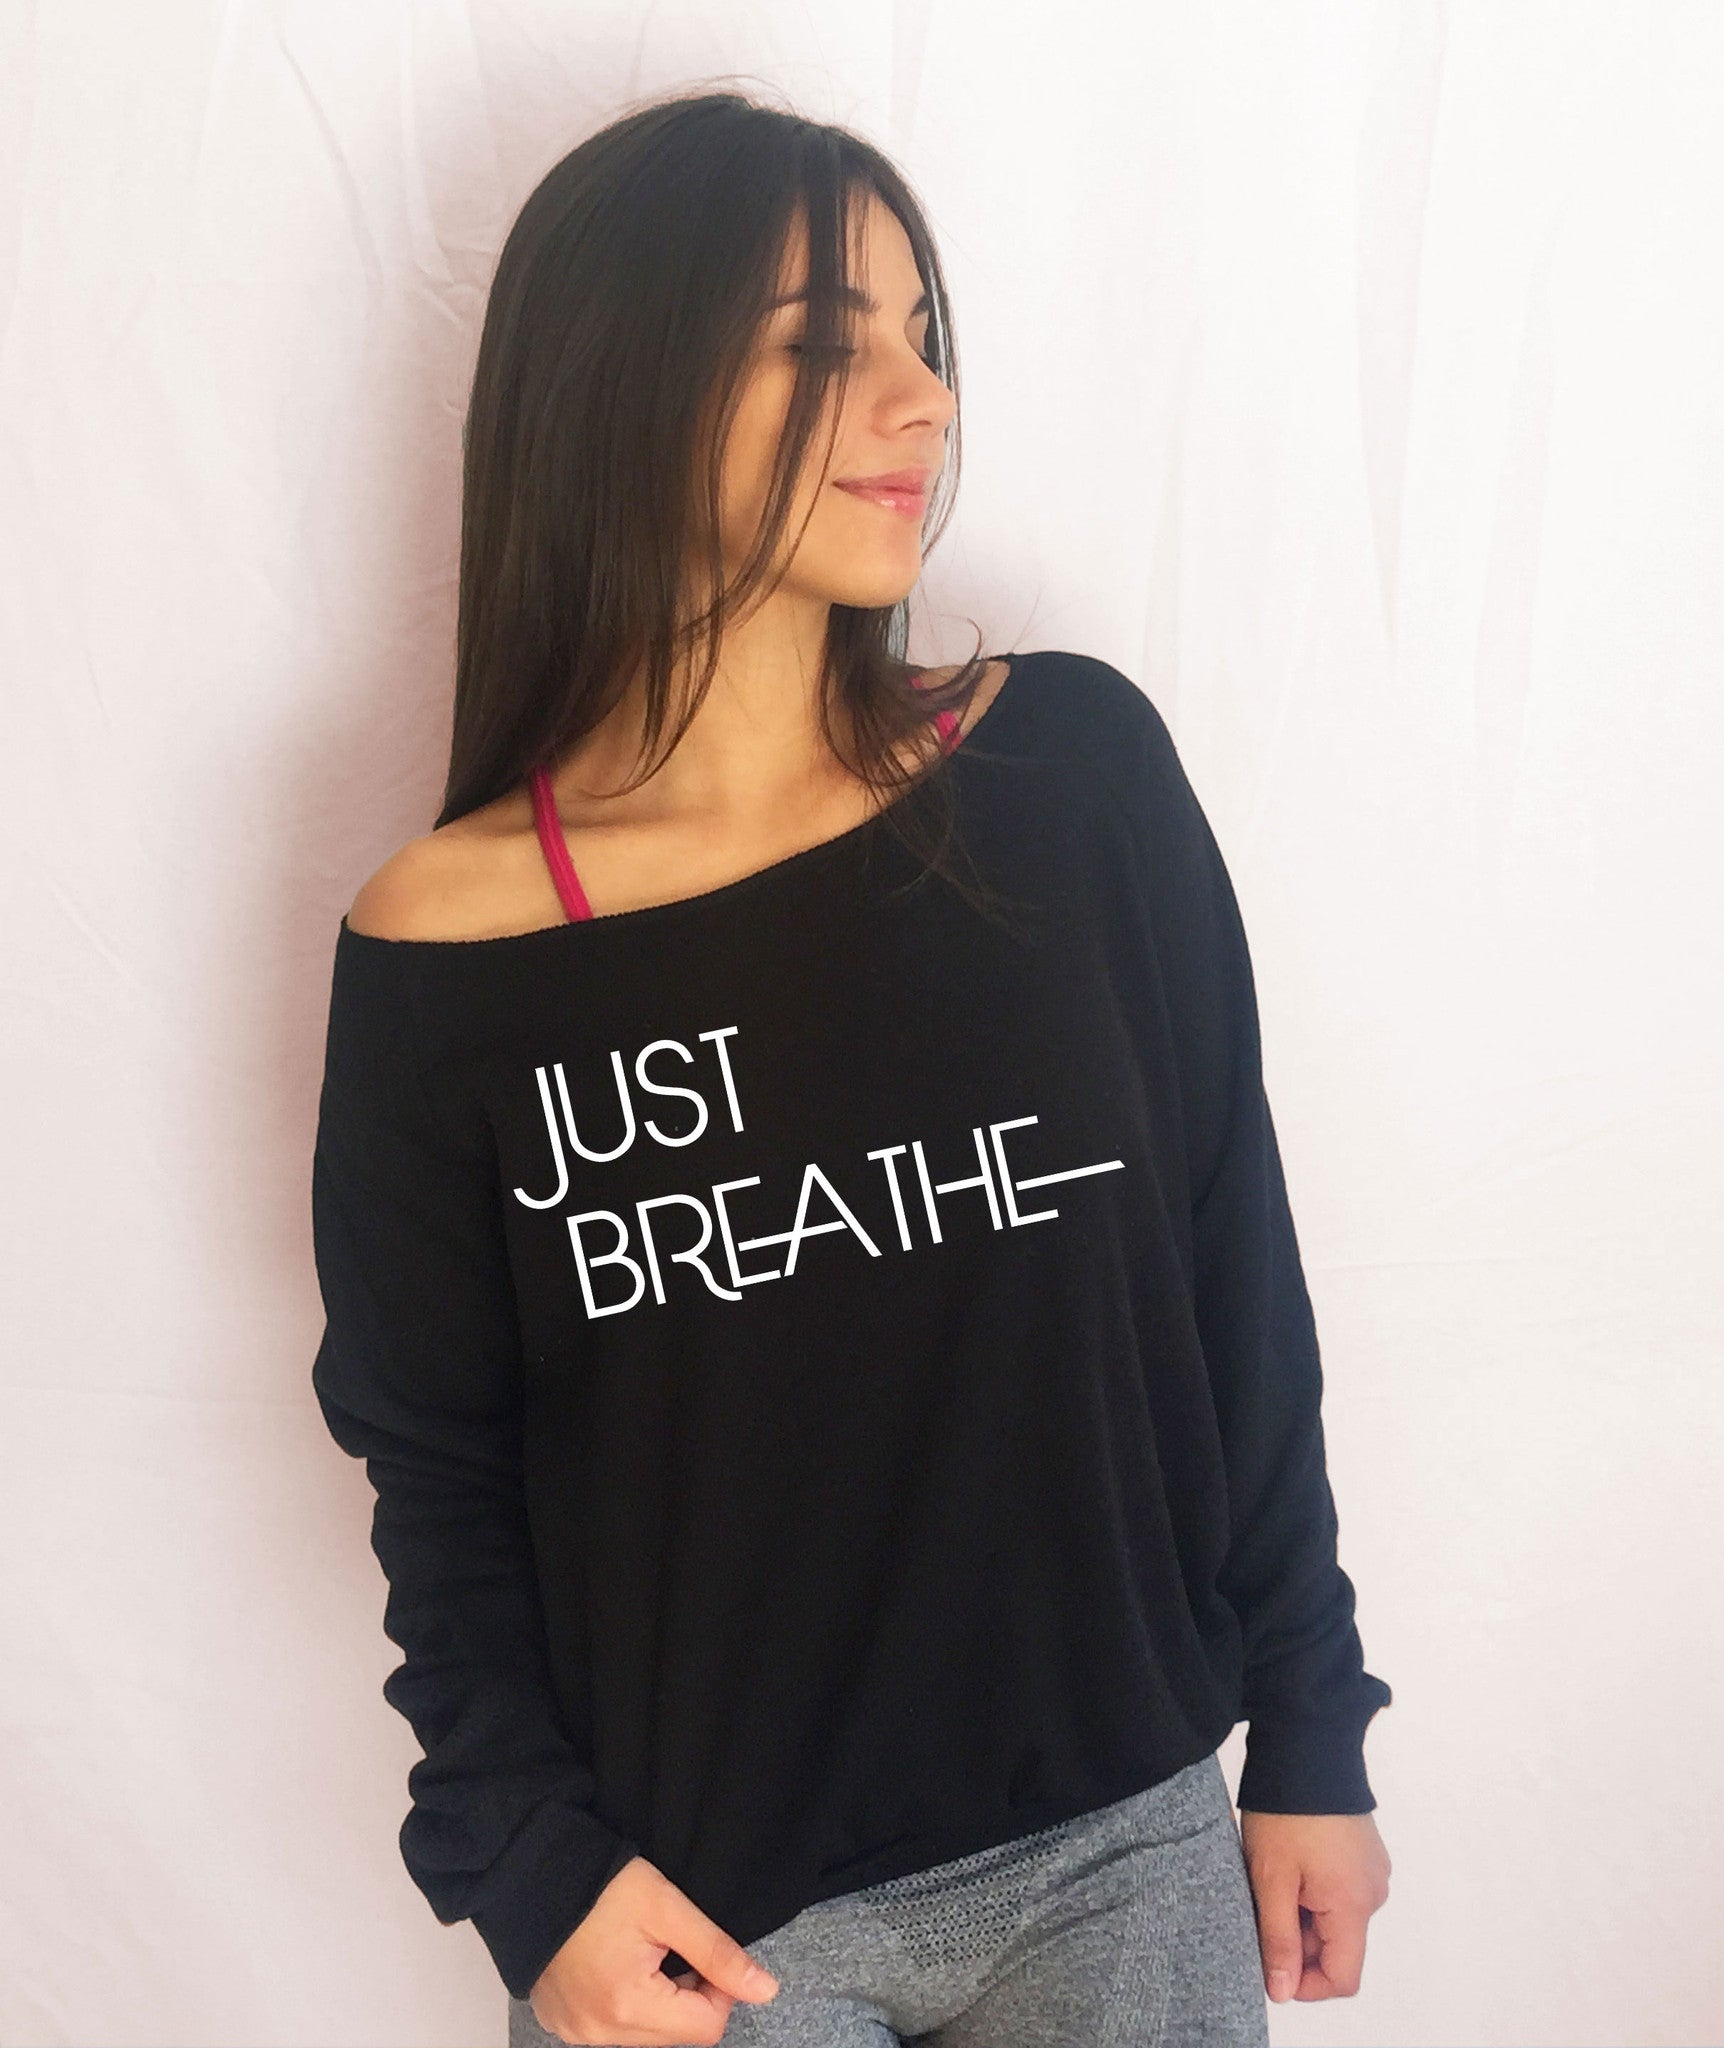 breathe fresh fleece sweater sport sporty girl fit fitness workout